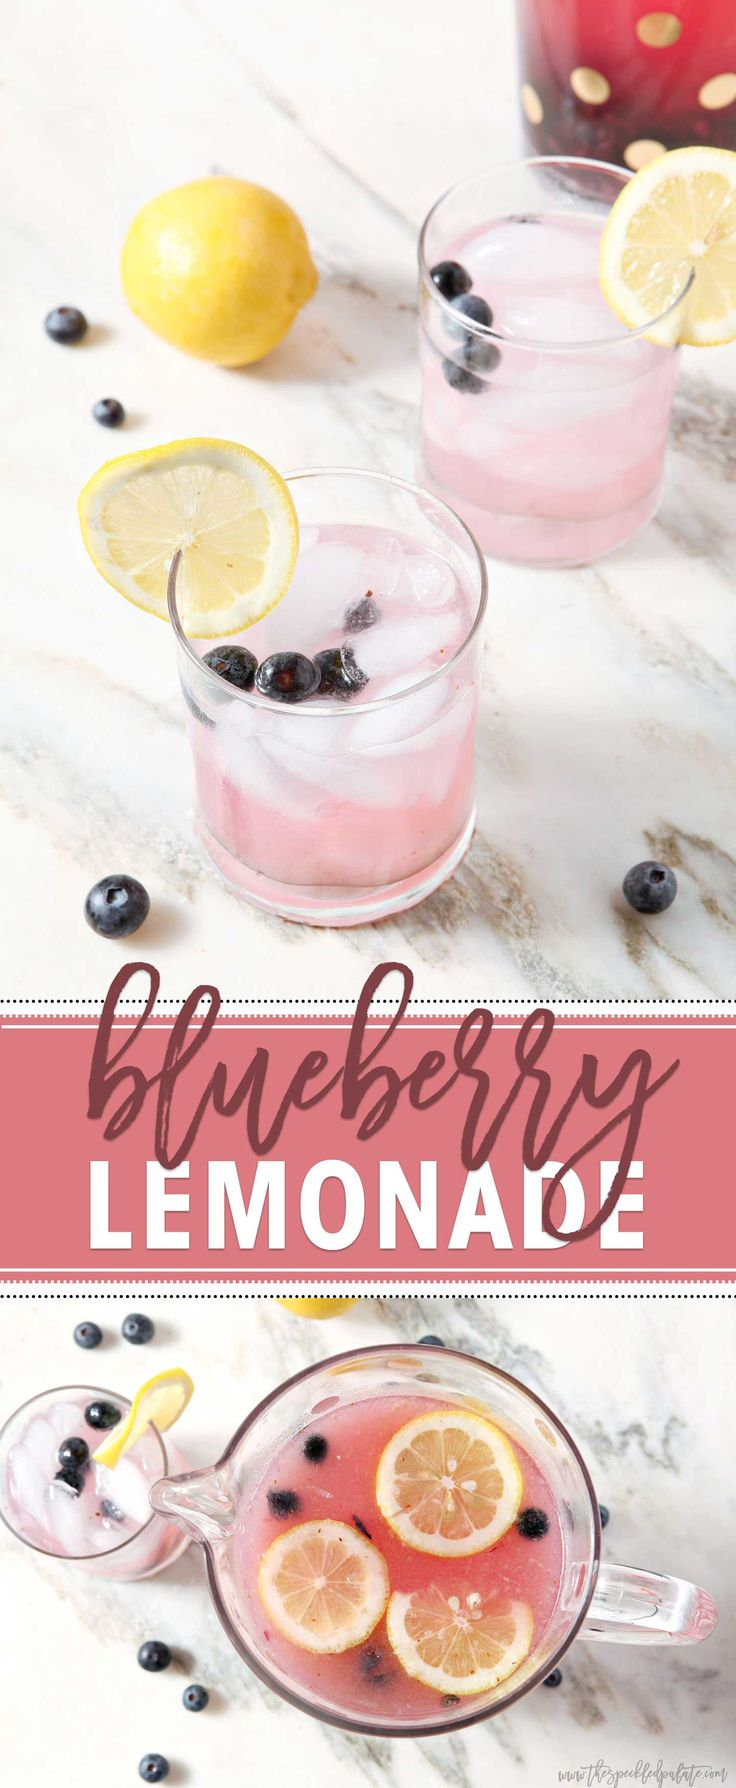 The thermometer is climbing as the warm summer temperatures arrive. To combat the heat, we should cool down with a tall glass of this large-batch Blueberry Lemonade, which strikes the perfect balance of sweet and tart. Blueberries are muddled, then mixed into freshly squeezed lemon juice, cool water and simple syrup to create this refreshing beverage. Blueberry Lemonade is the perfect non-alcoholic drink to enjoy during the summer months.